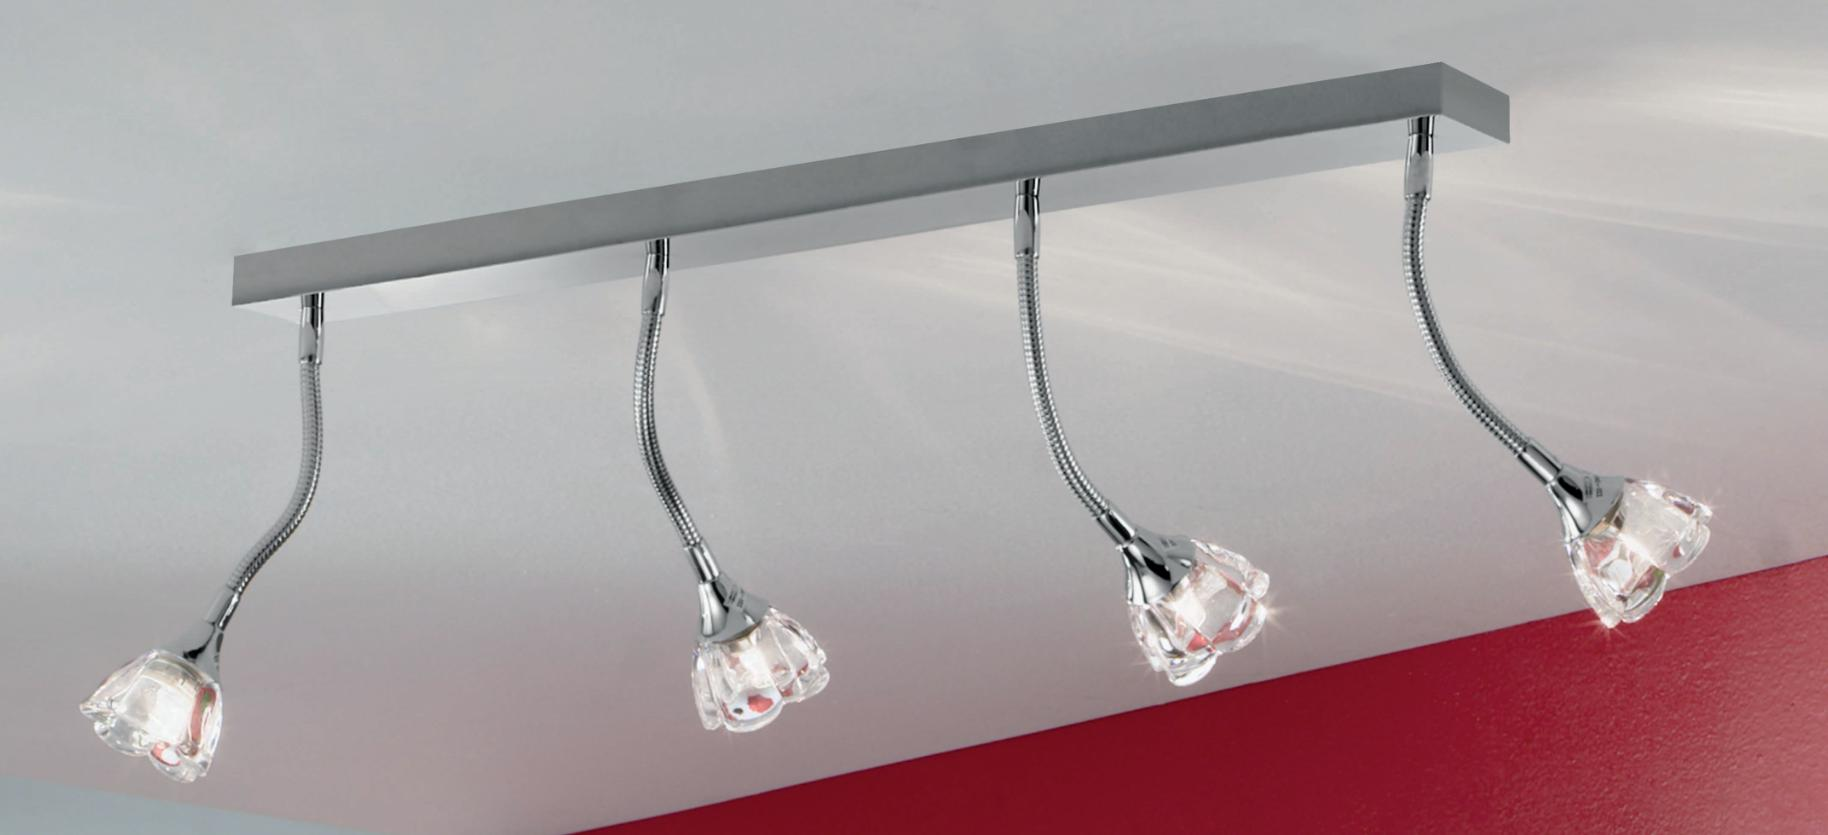 4 CLARA WALL / CEILING WITH FLEXIBLE ARM Ceiling track lights and spotlights